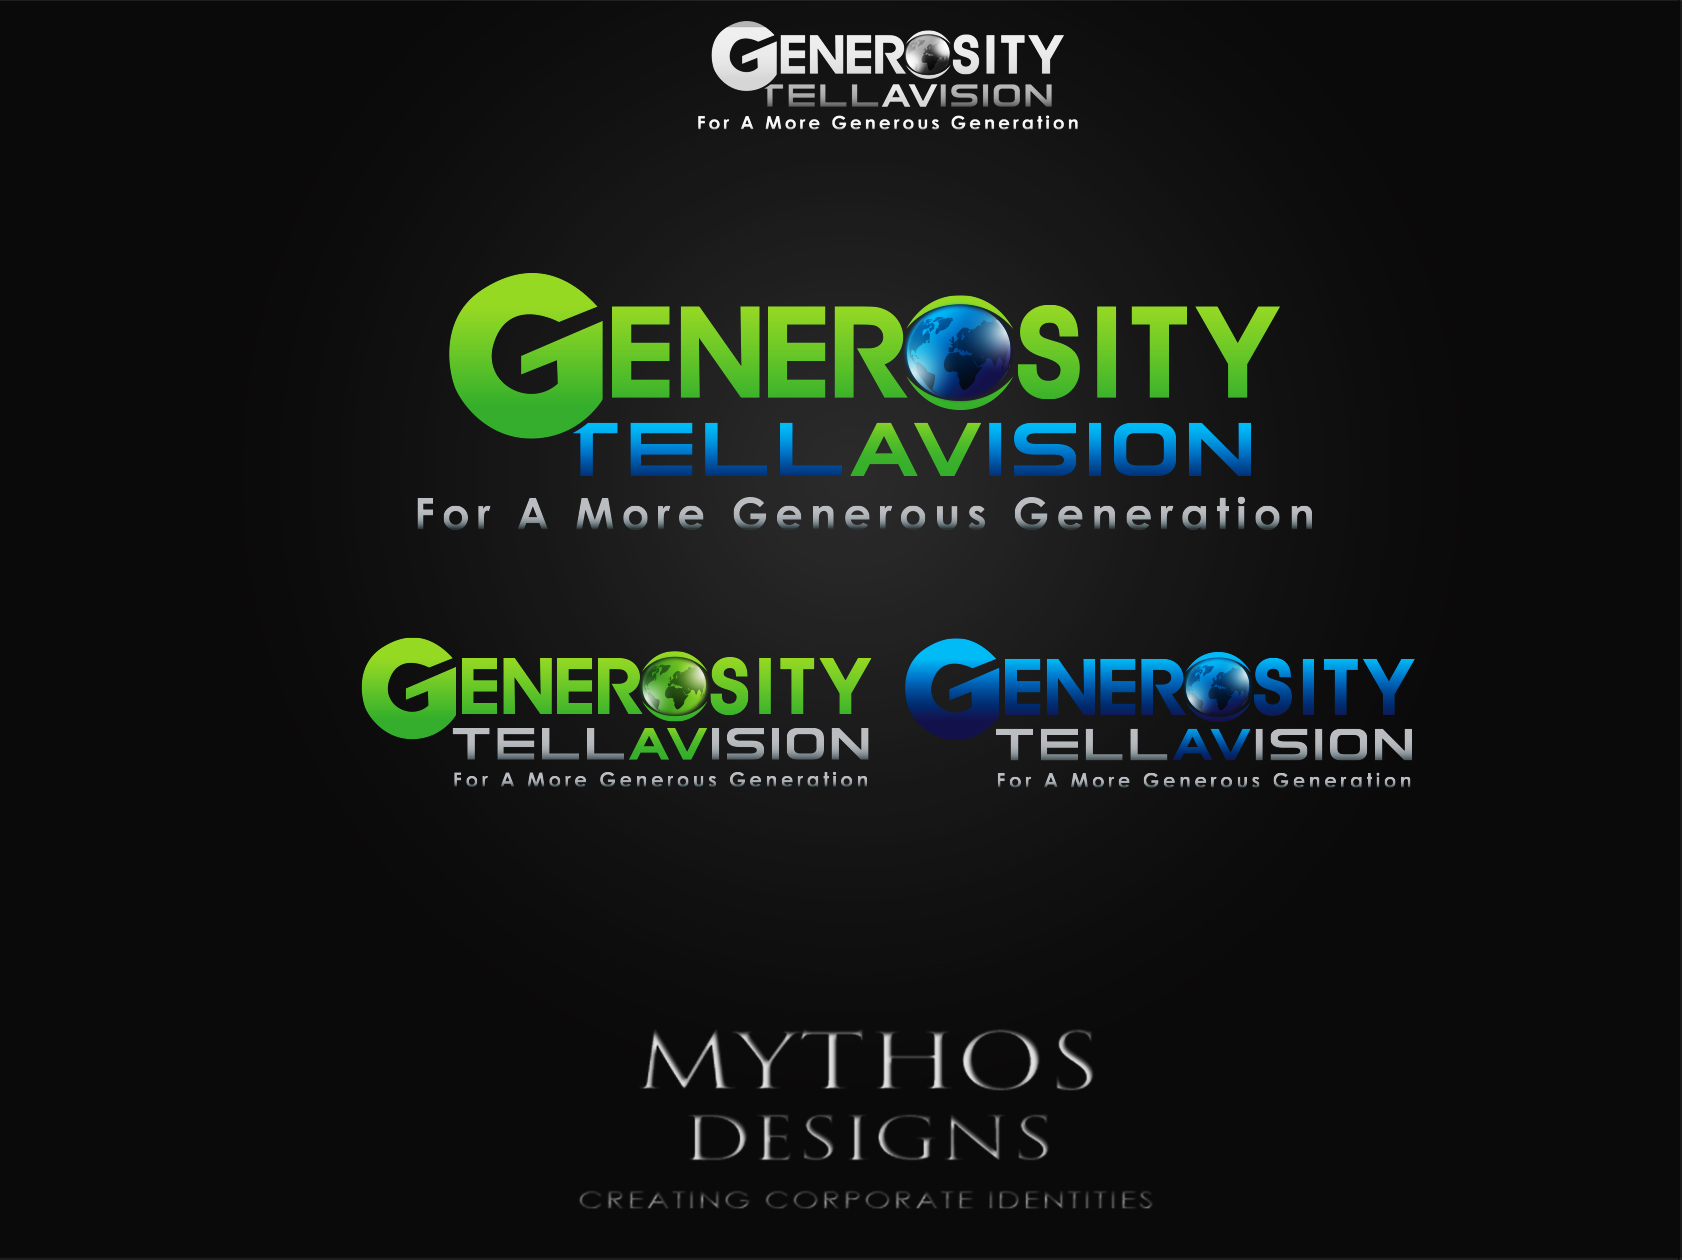 Logo Design by Mythos Designs - Entry No. 101 in the Logo Design Contest Artistic Logo Design for Generosity TellAVision.